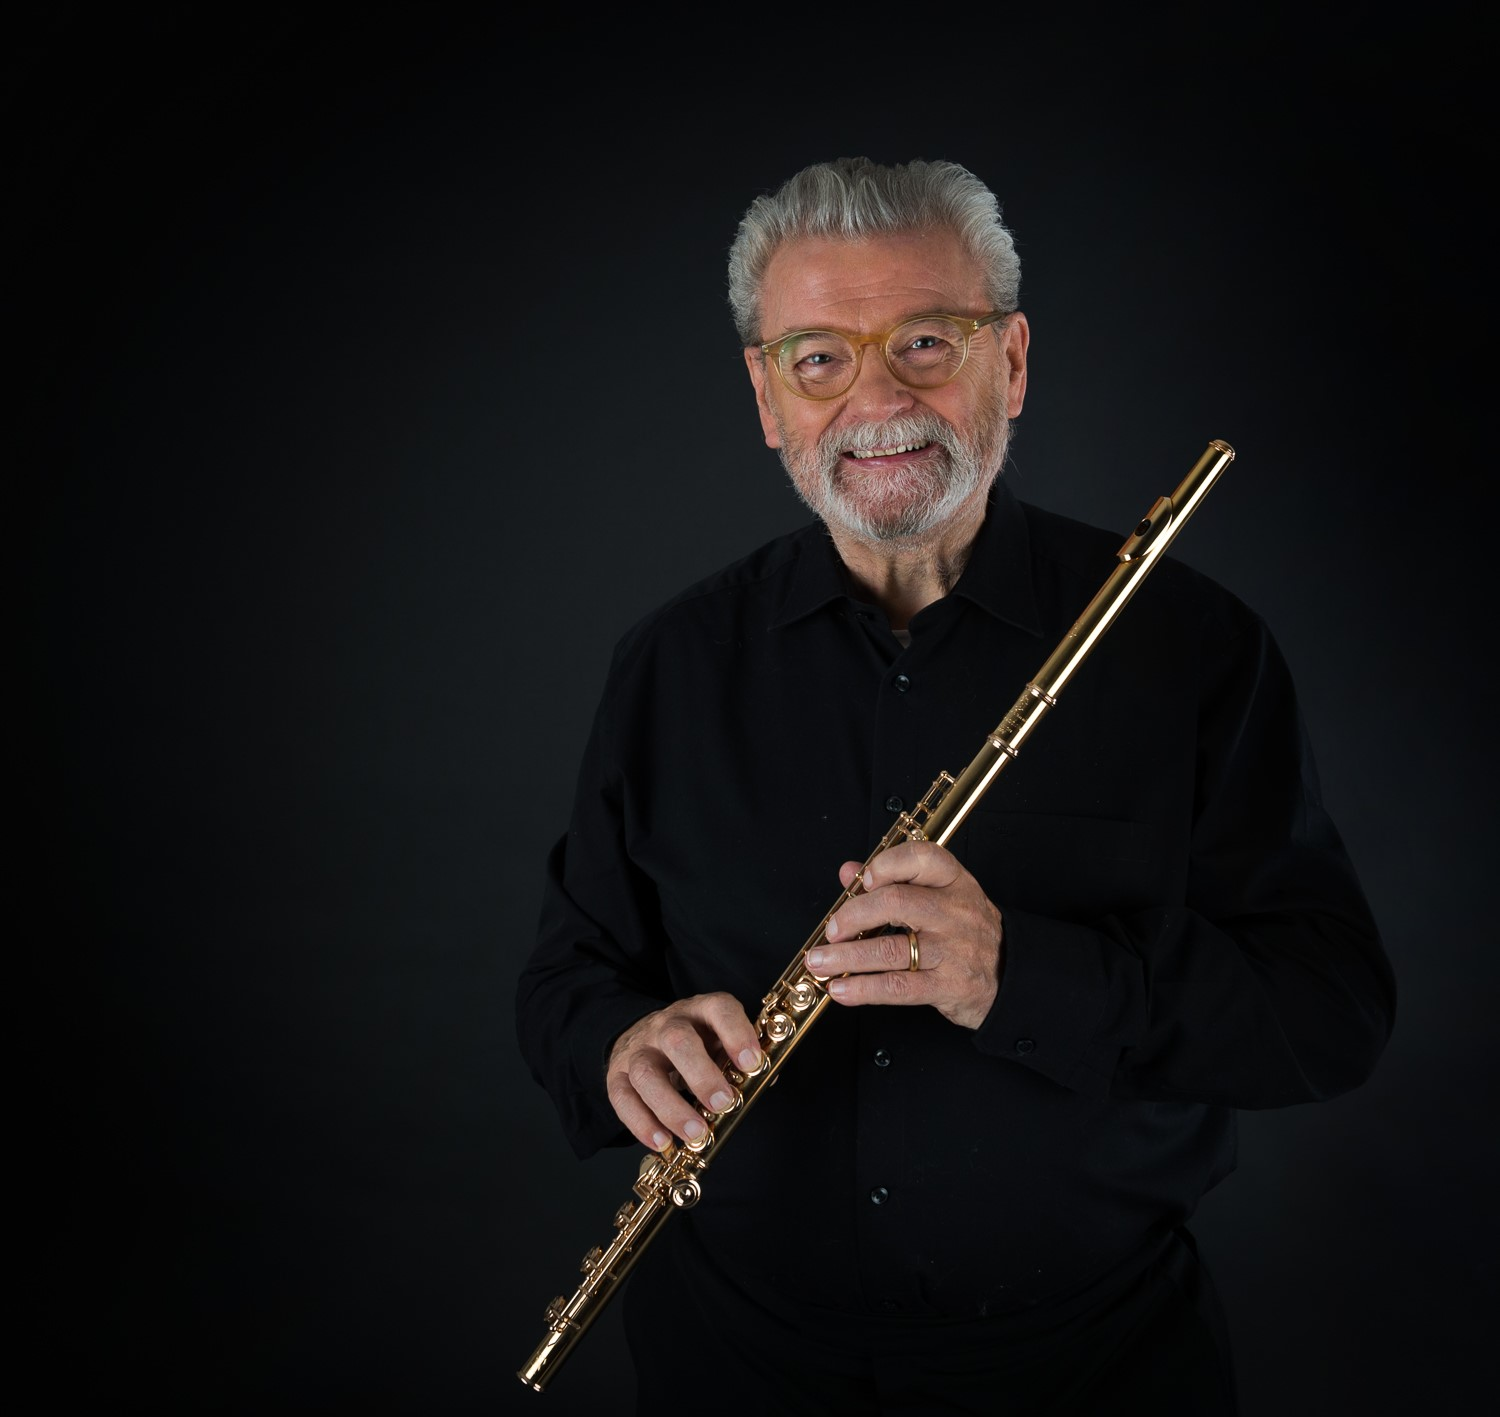 An Evening with Sir James Galway and the Ulster Orchestra - Macmillan Media